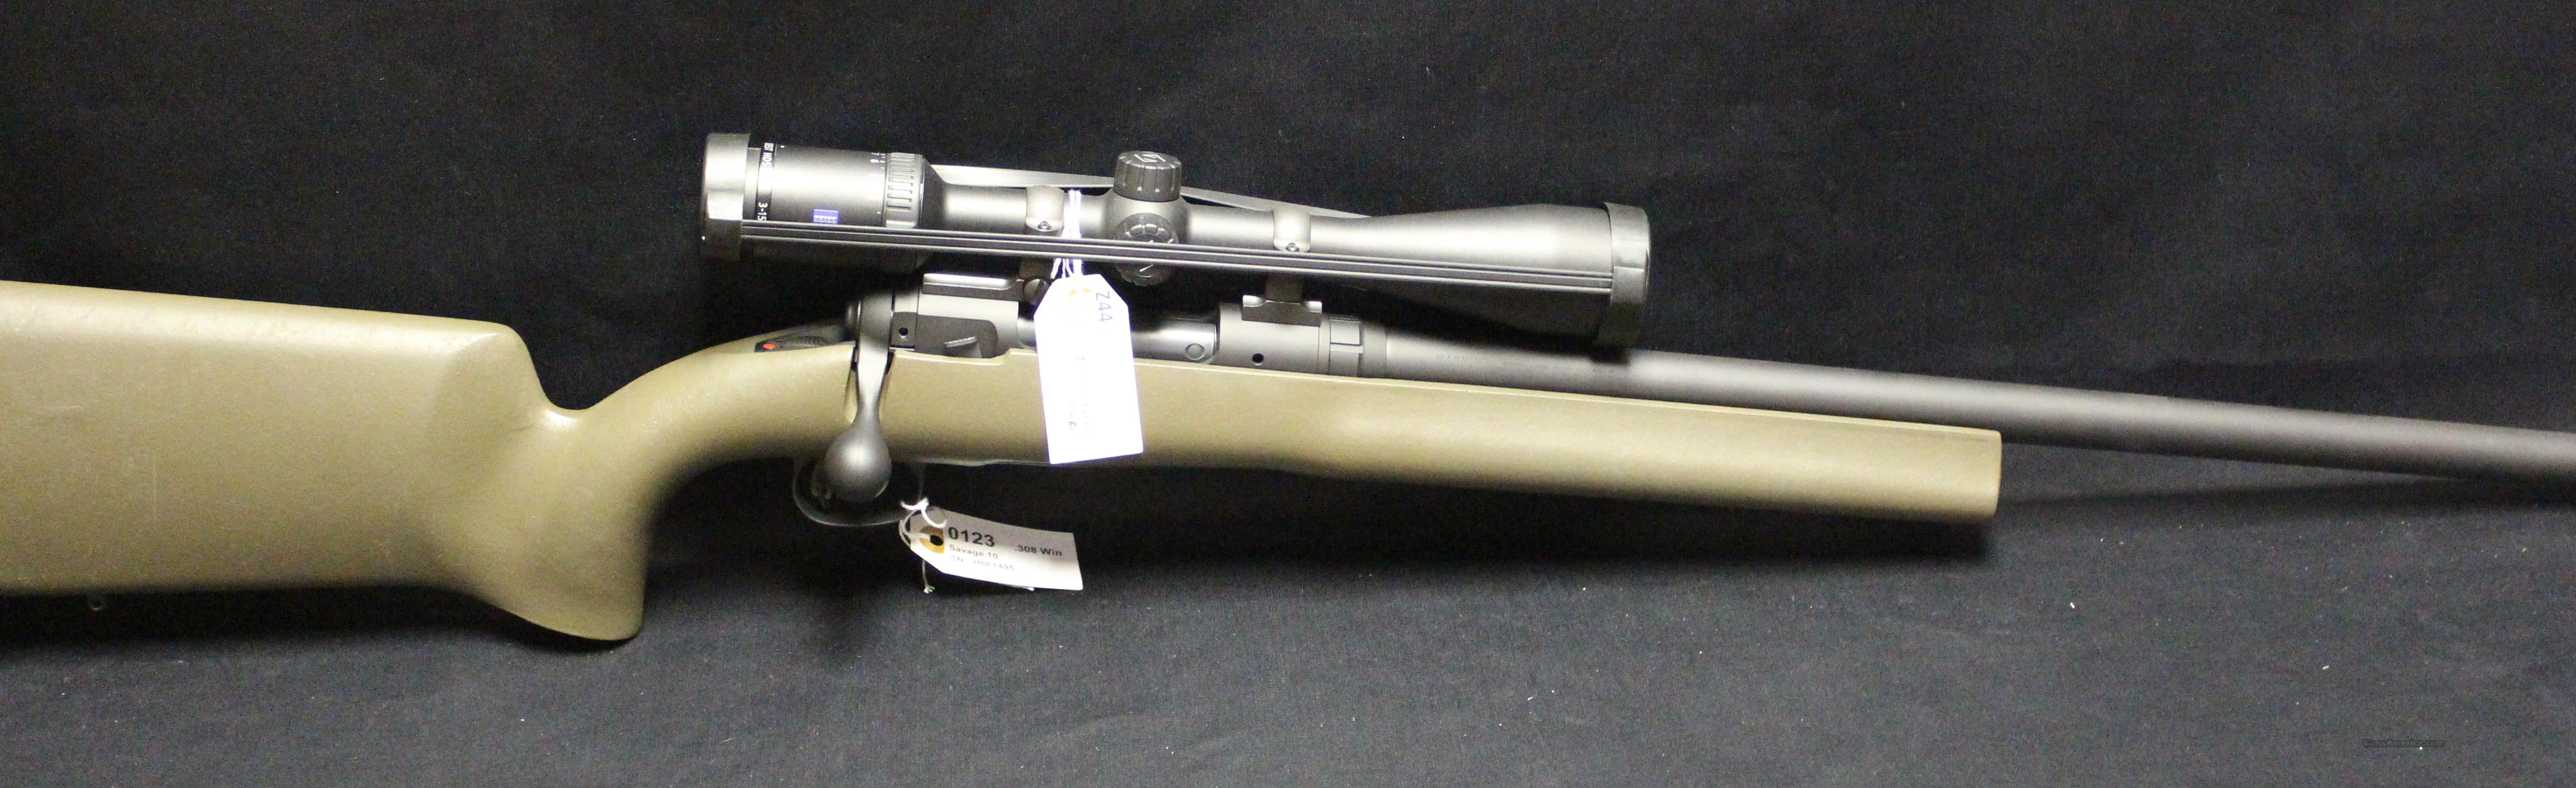 Savage 10 308 +Zeiss Scope  Guns > Rifles > Savage Rifles > Accutrigger Models > Sporting